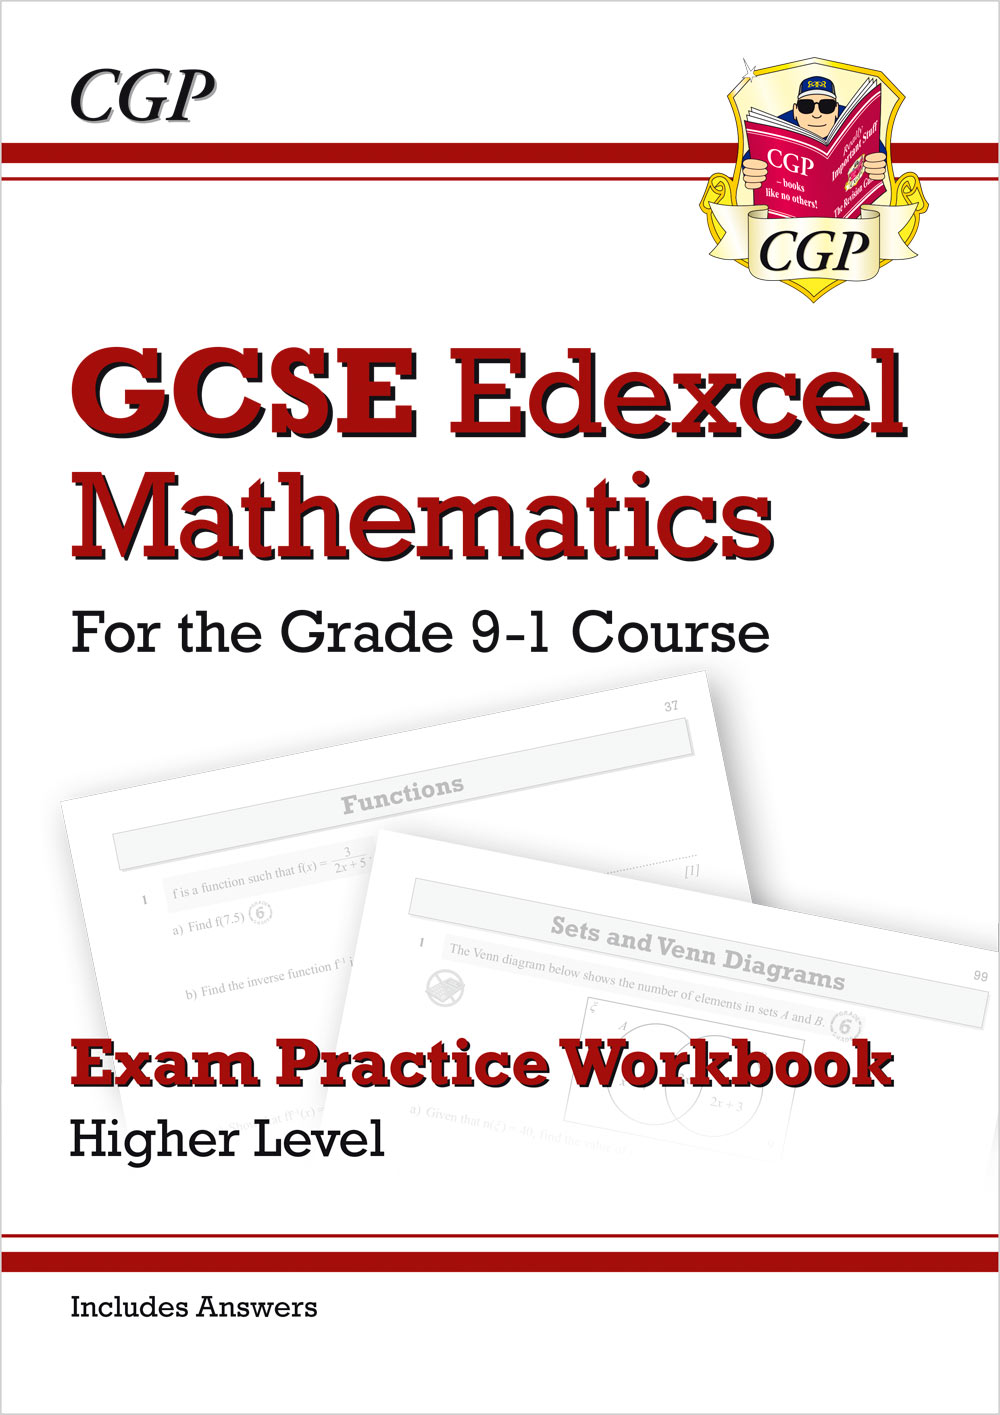 Maths | CGP Books